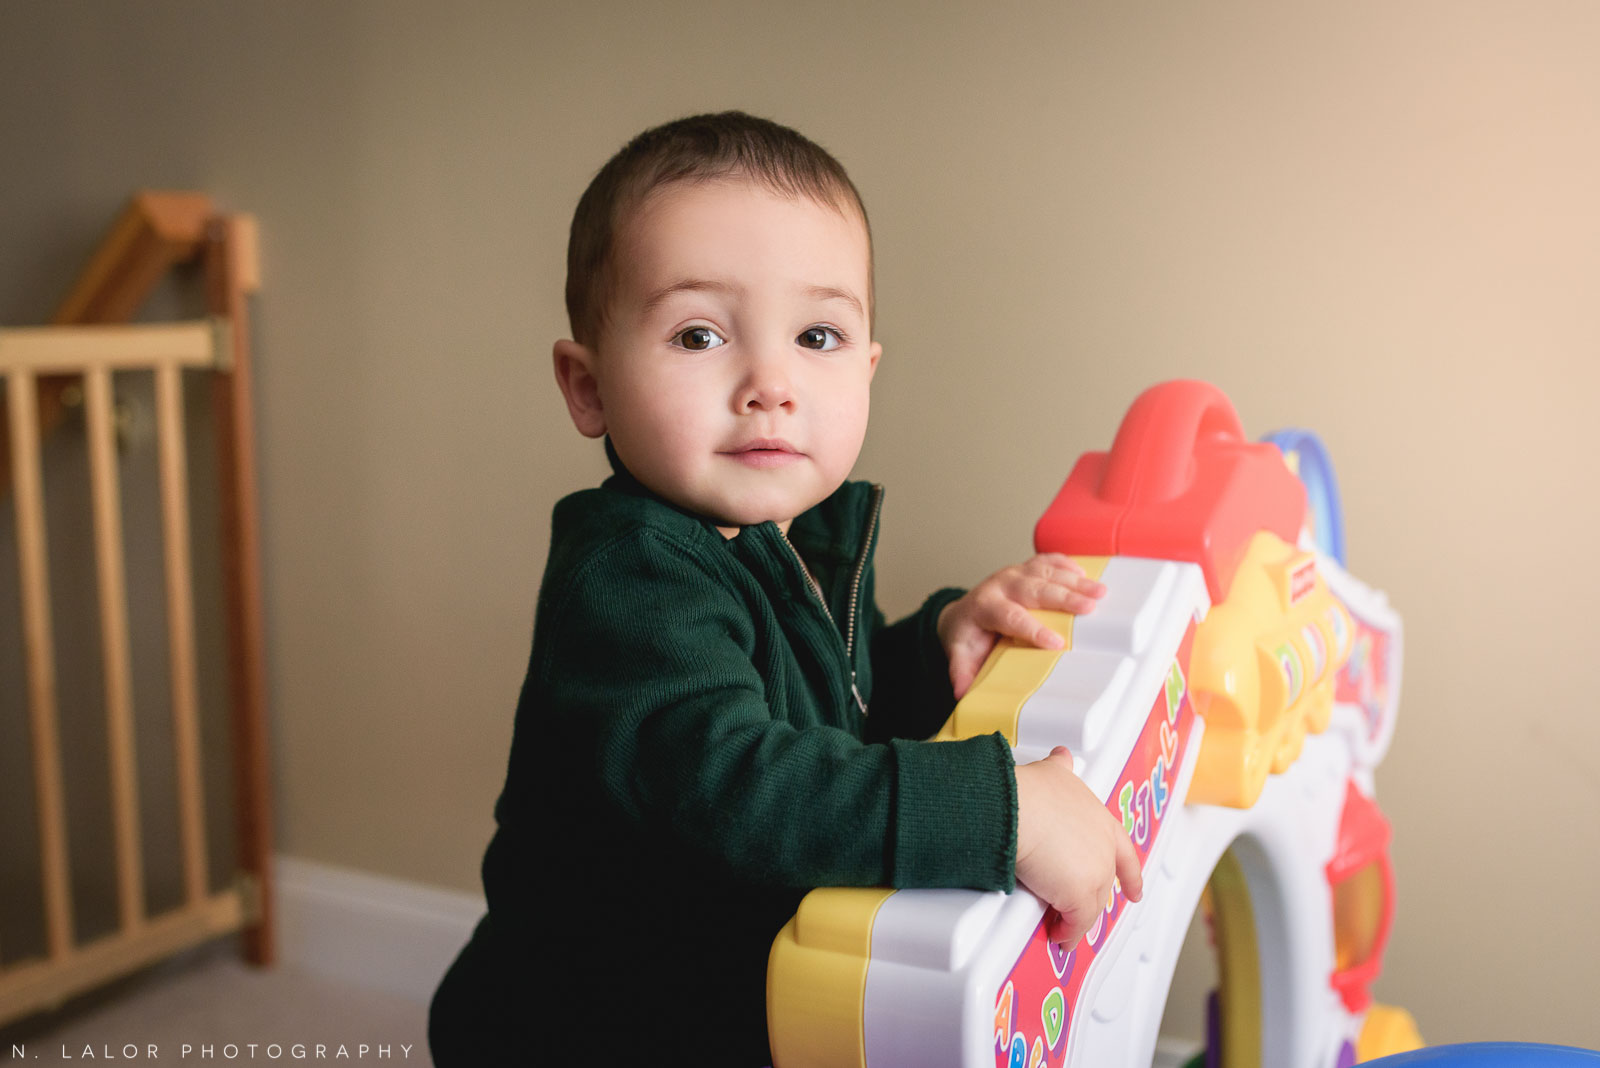 Toddler boy playing with a toy. Lifestyle portrait by N. Lalor Photography.